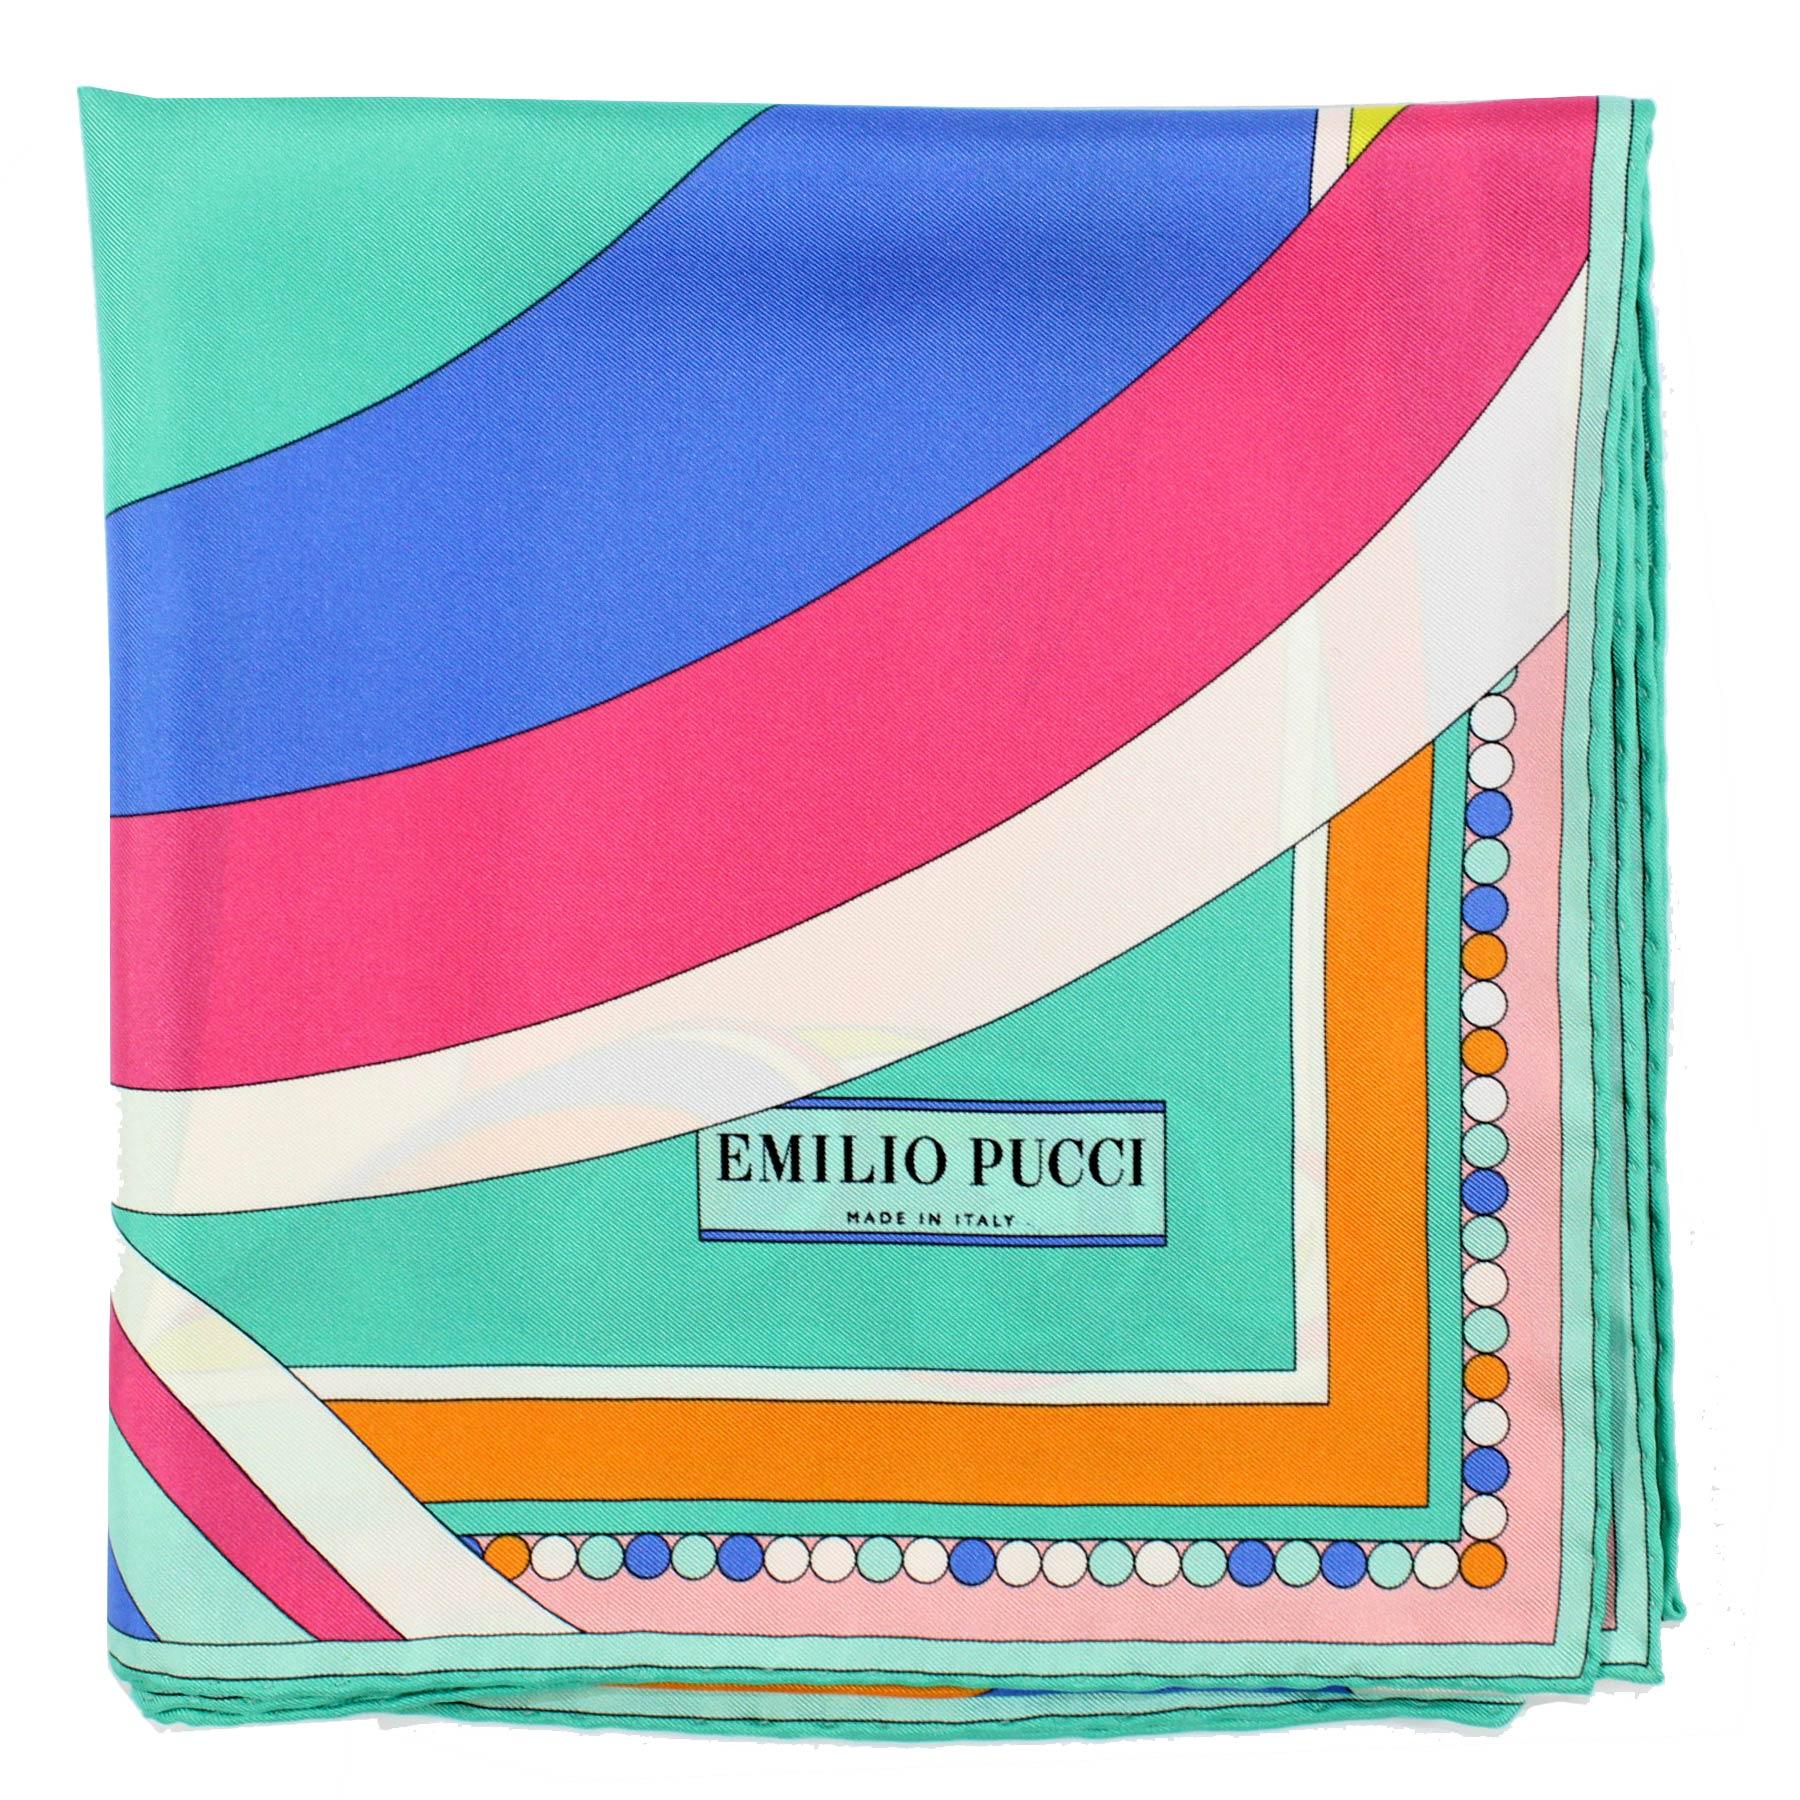 Emilio Pucci Scarf Mint Pink Blue Orange Signature Design